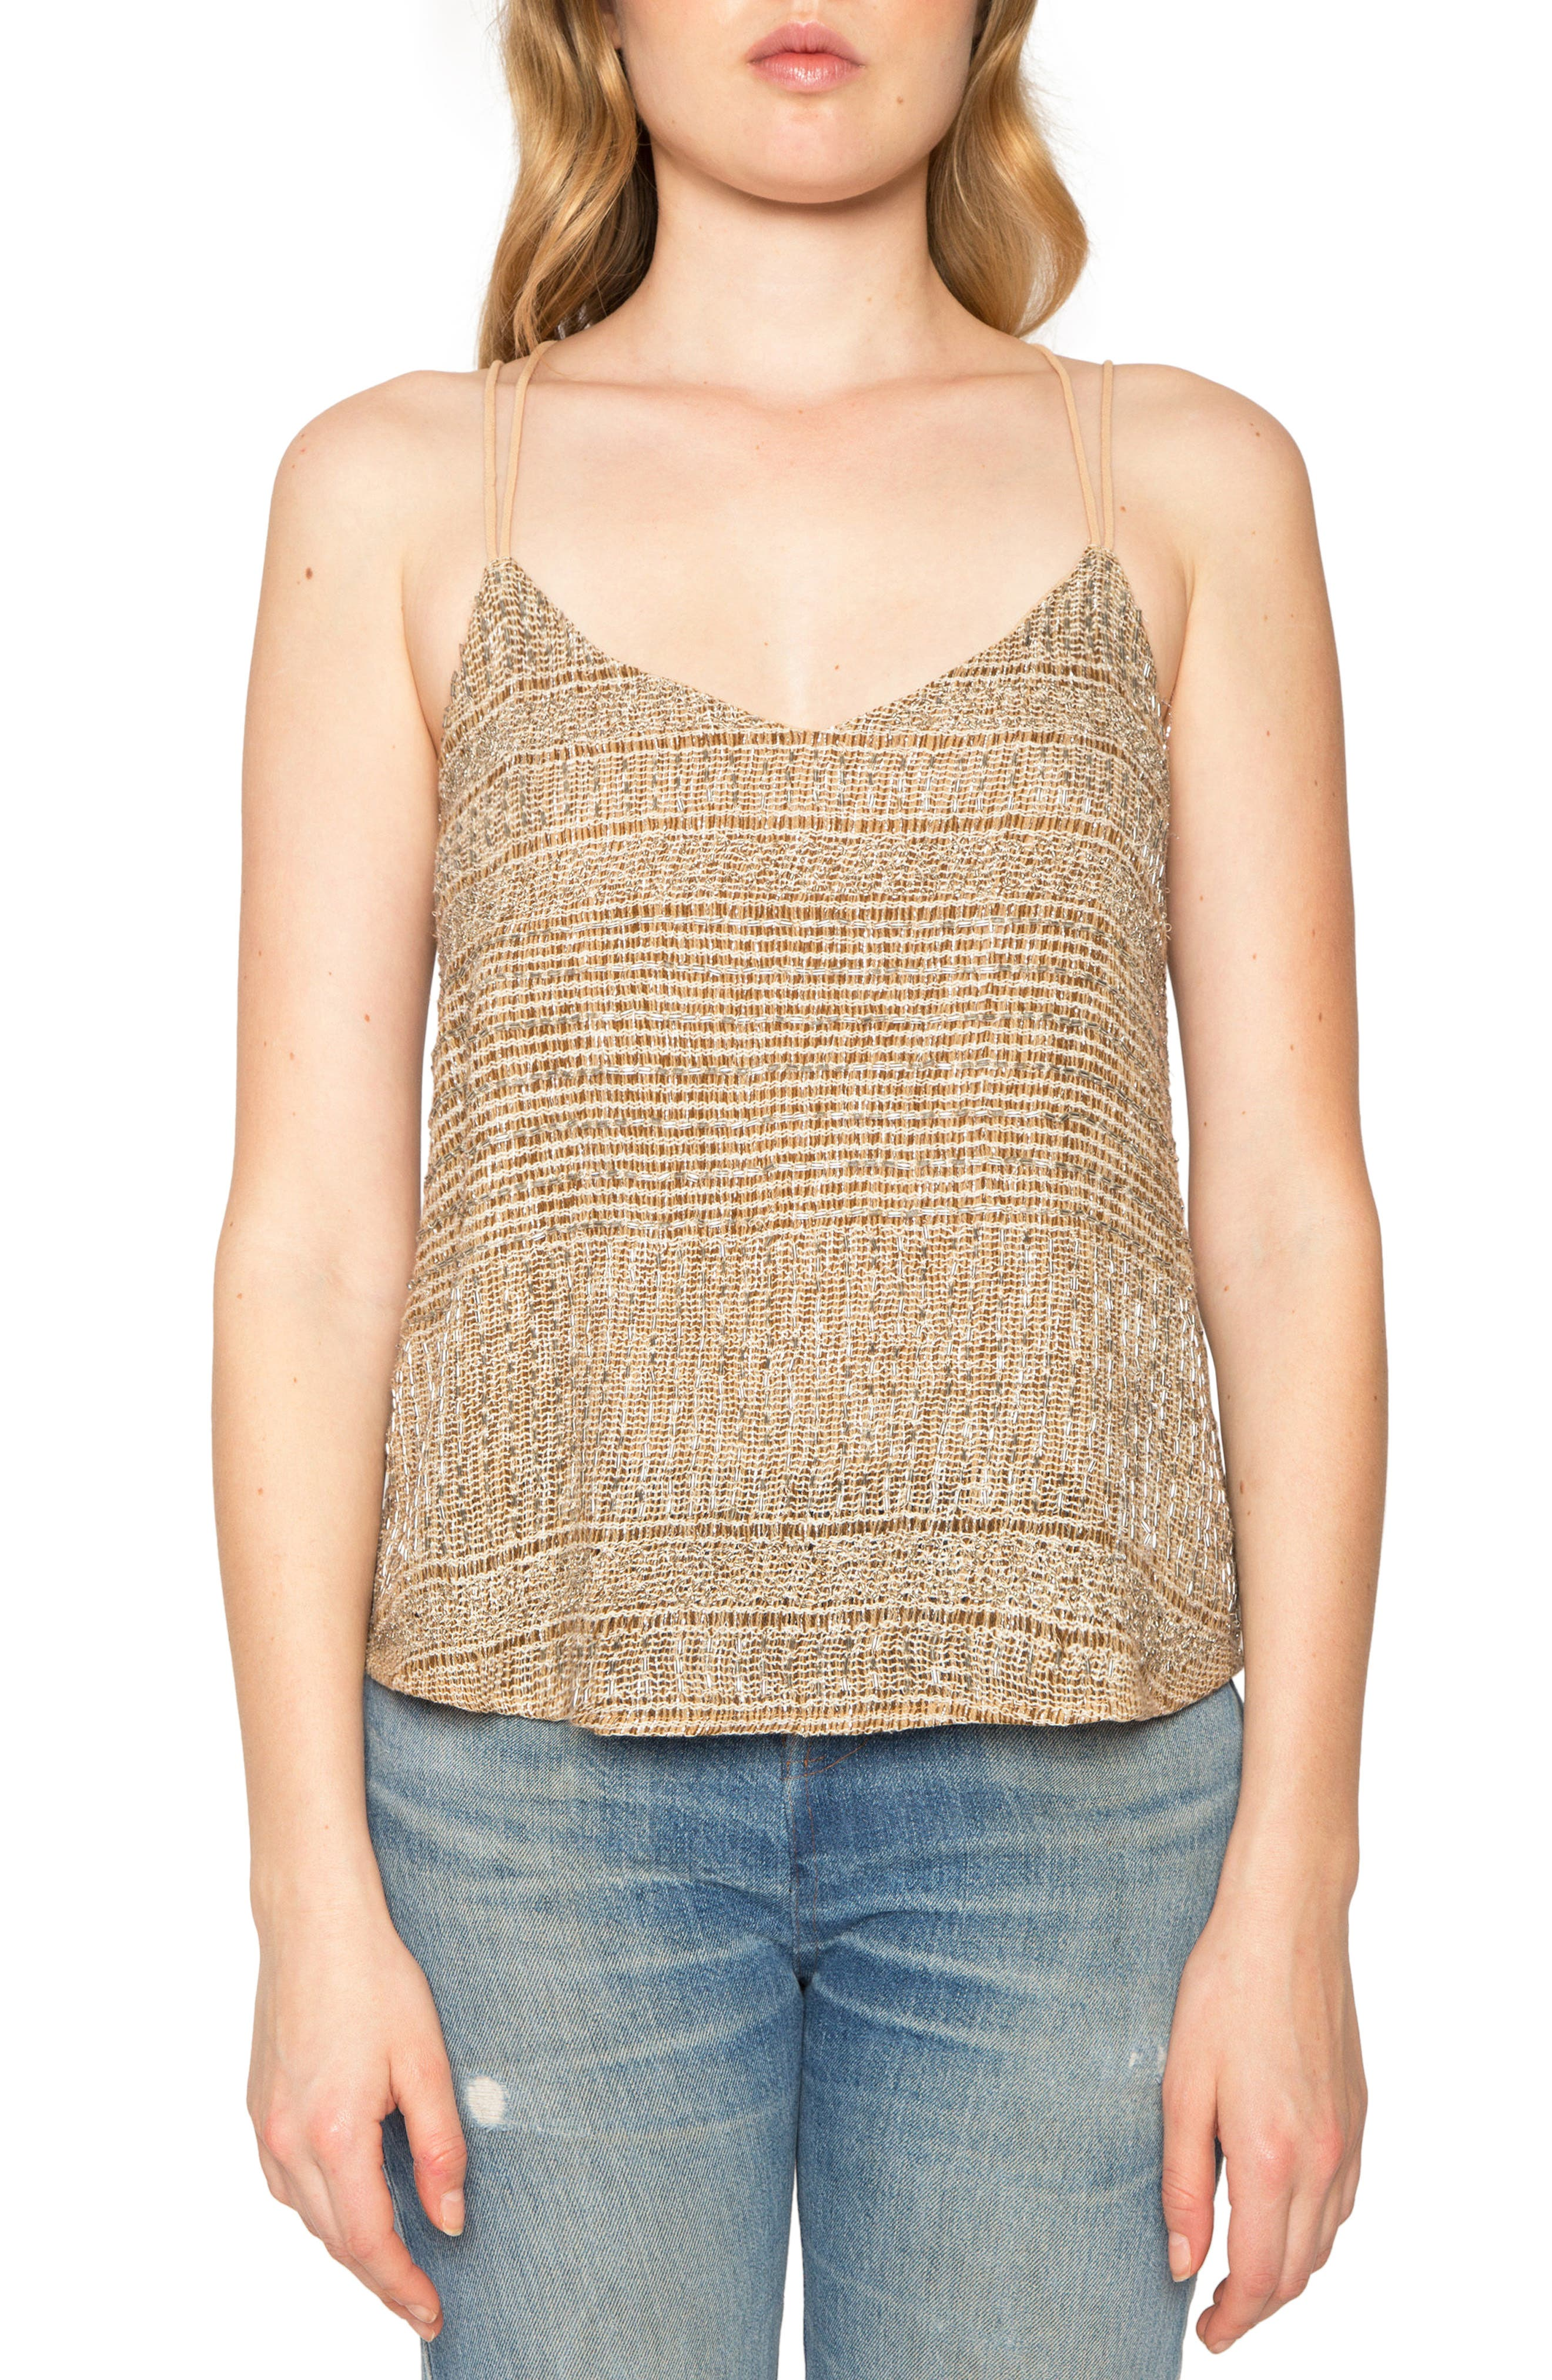 Willow & Clay Strappy Camisole